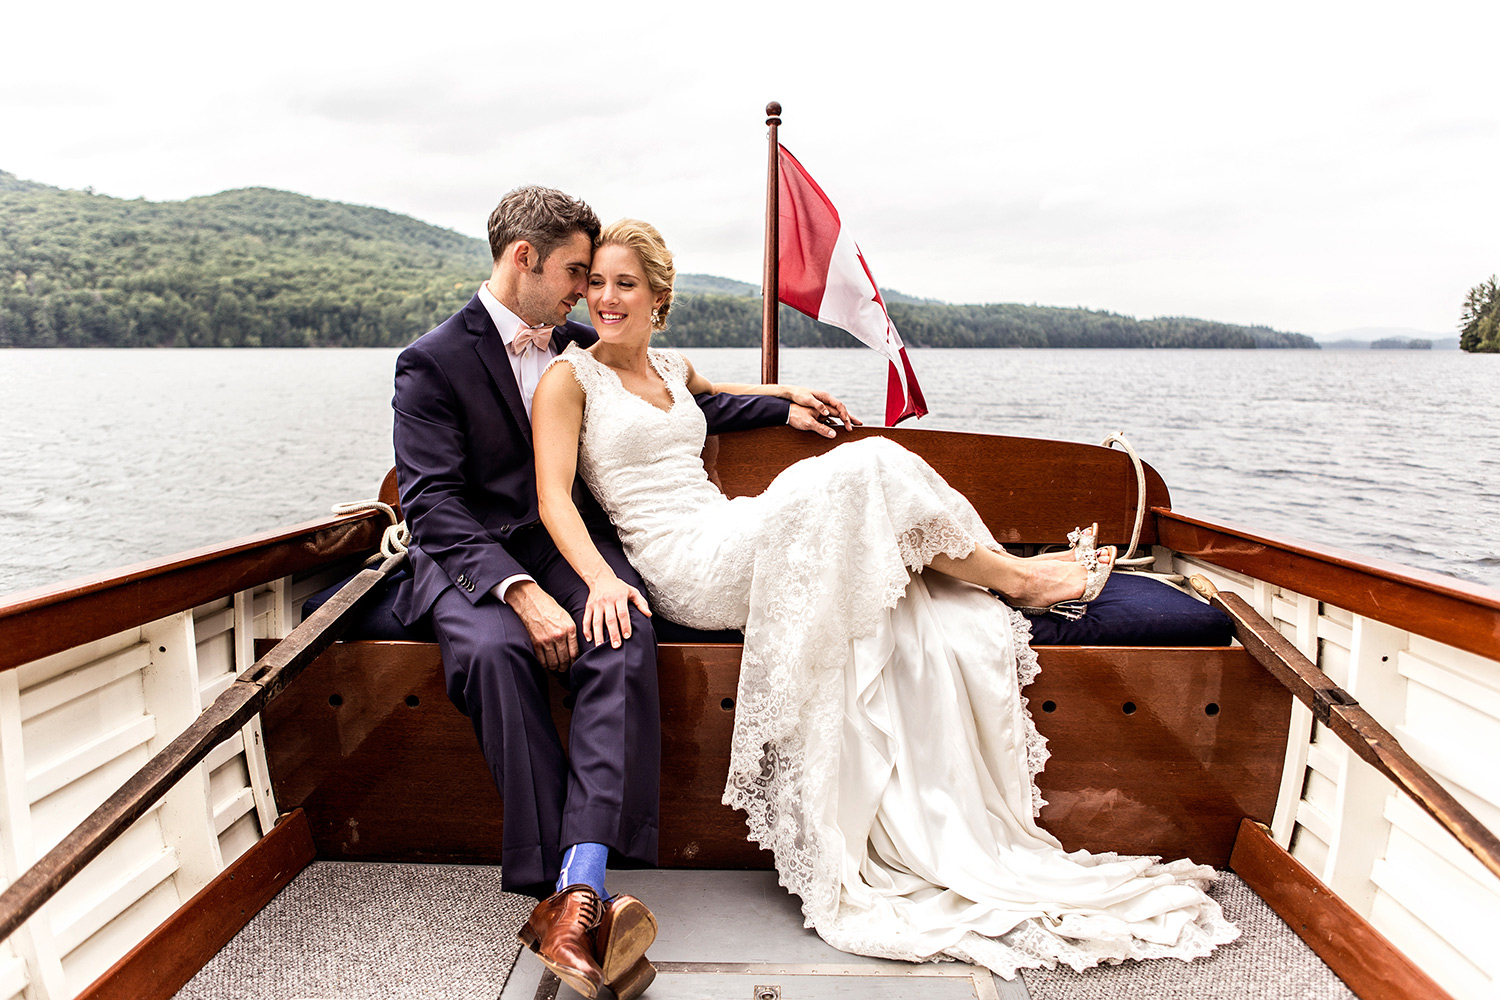 photograph of a bride groom in a boat during a portrait shoot at a cottage wedding